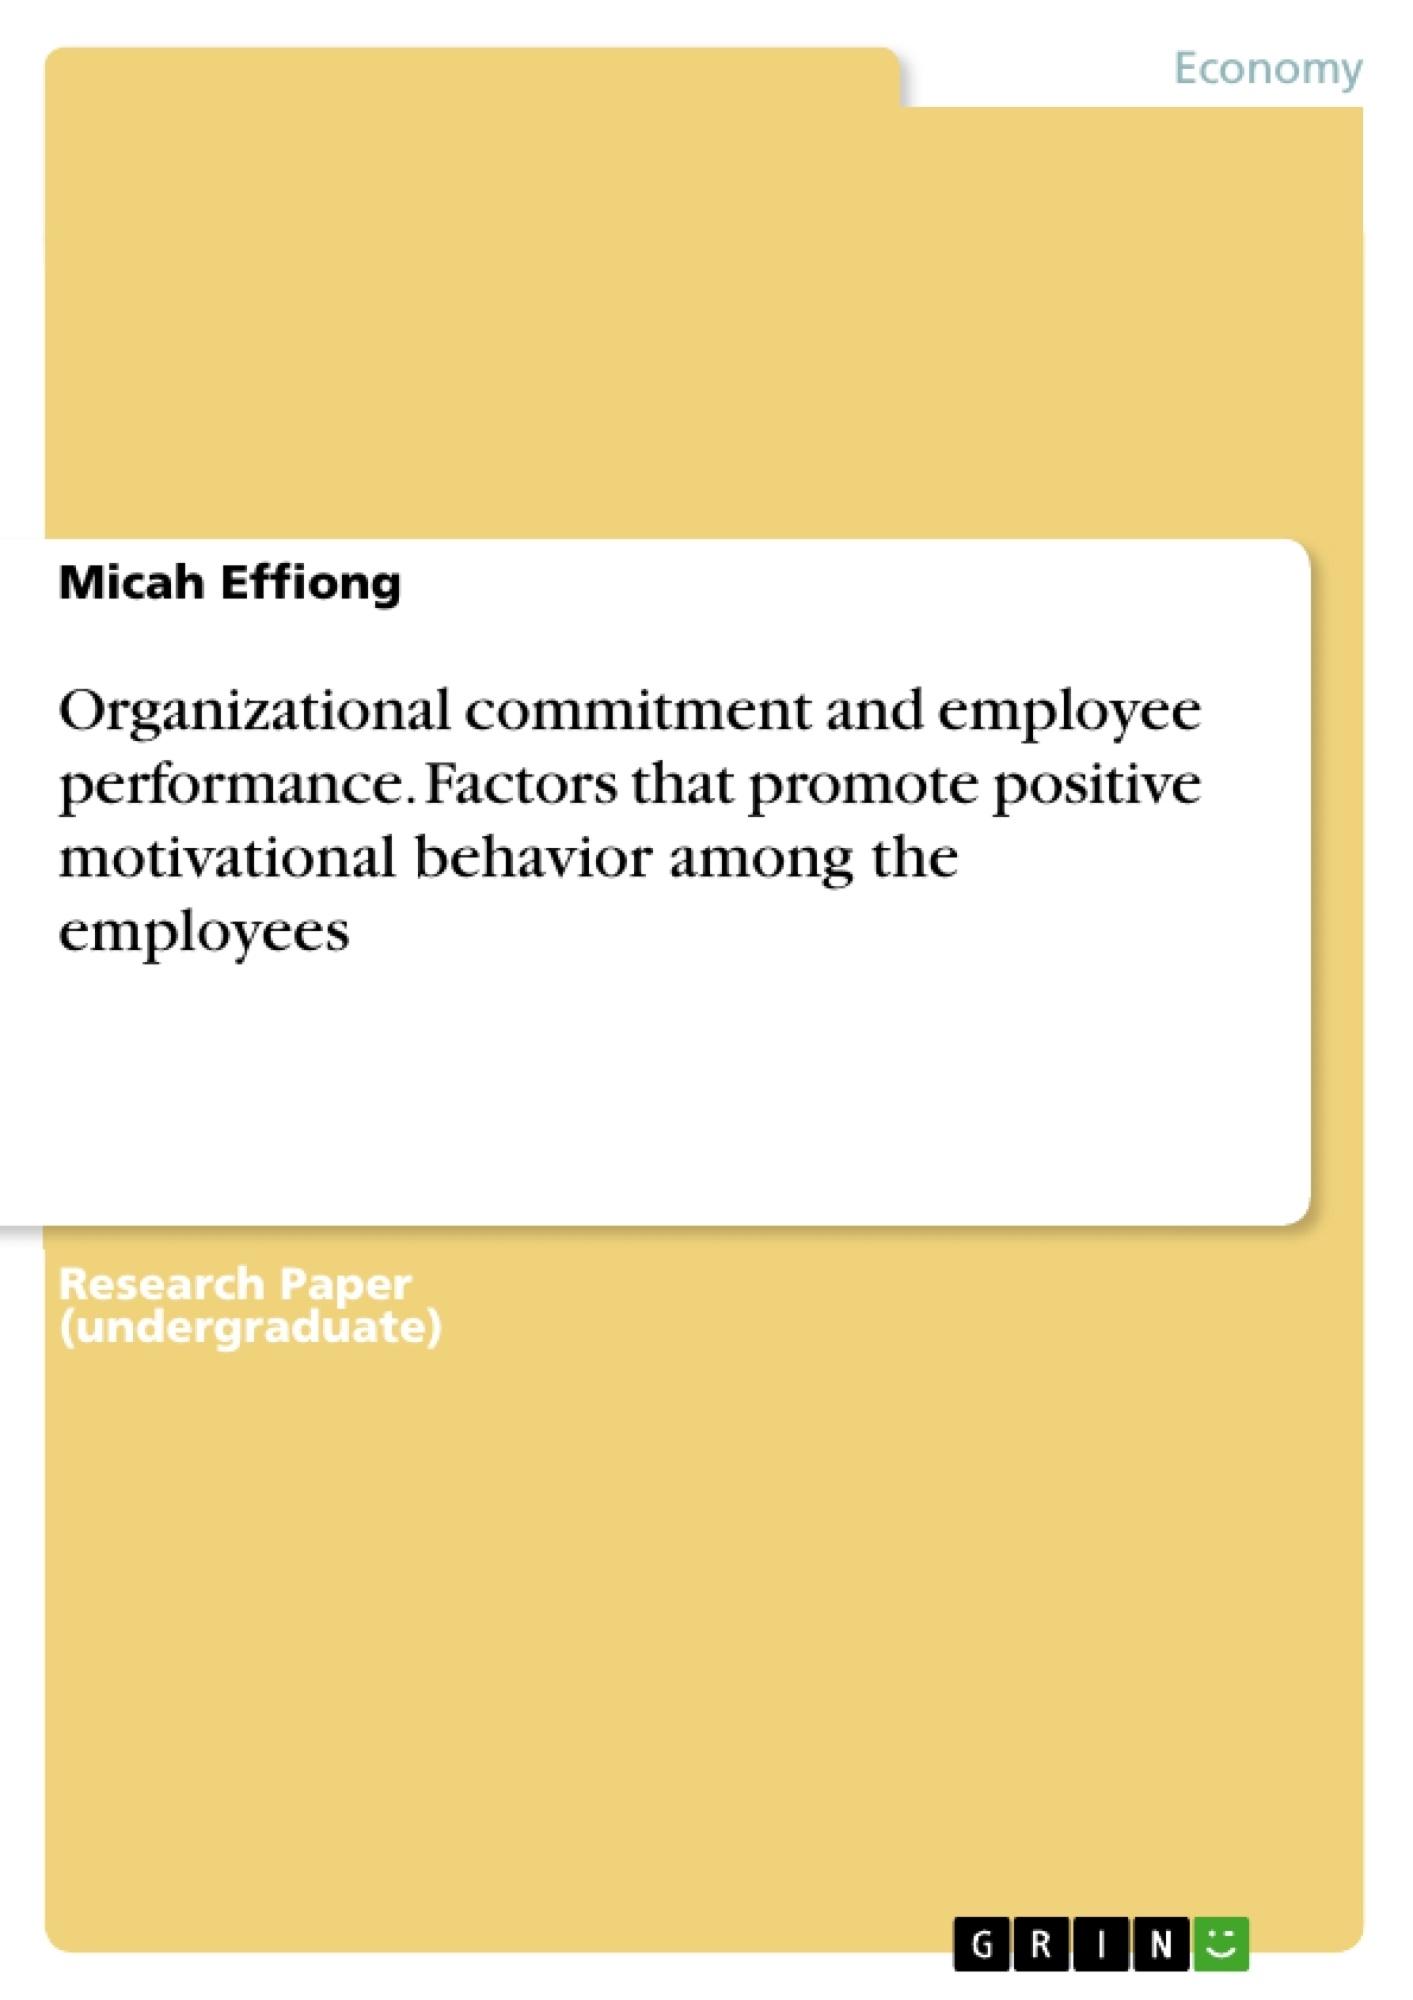 Title: Organizational commitment and employee performance. Factors that promote positive motivational behavior among the employees